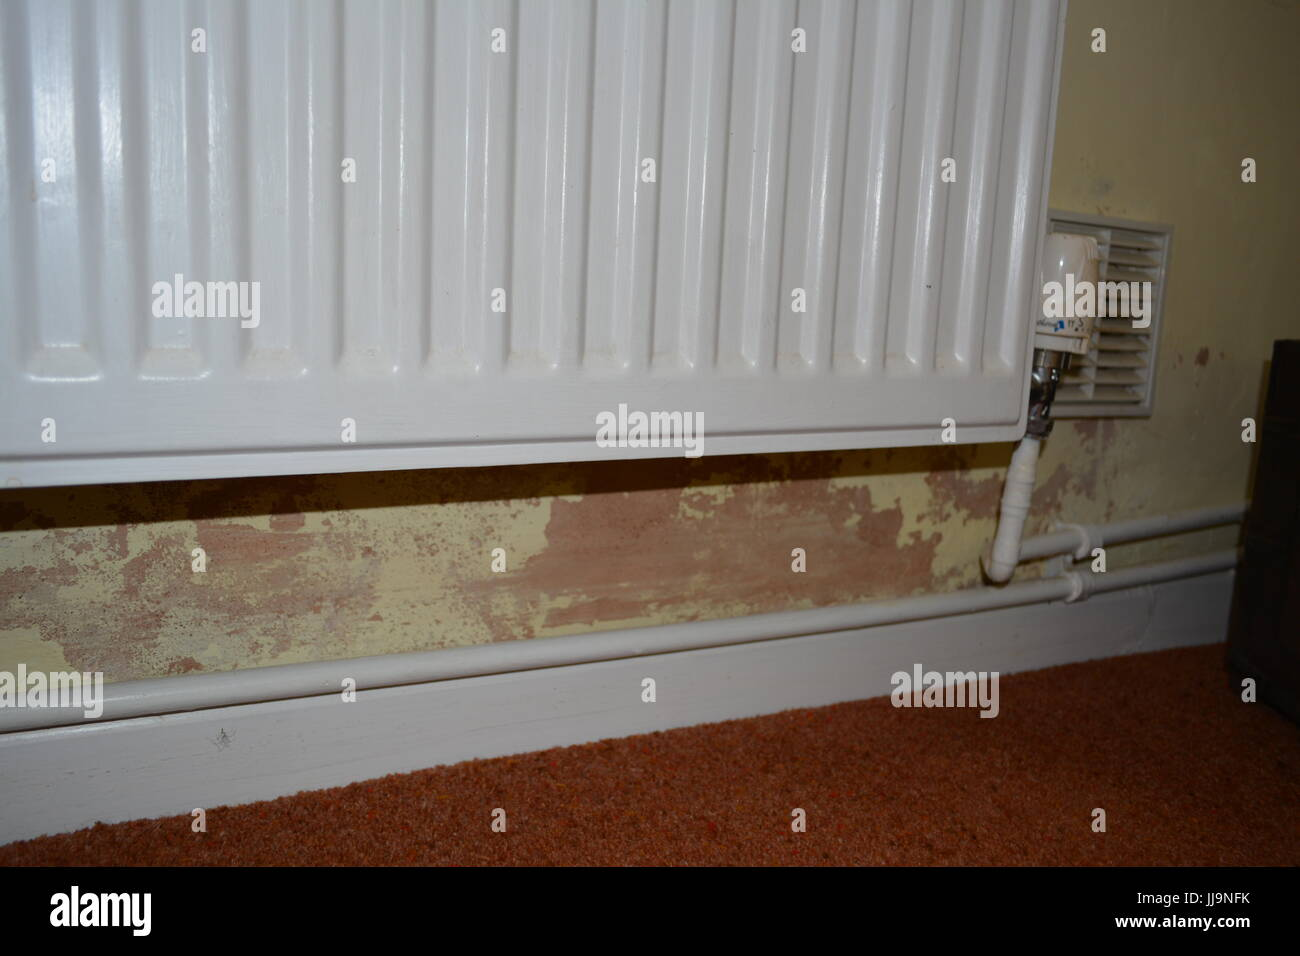 Rising damp on inside wall of old house re peeling paint poor stock rising damp on inside wall of old house re peeling paint poor decoration dpc dpm damp proof course membrane radiator ventilation heat heating pipes solutioingenieria